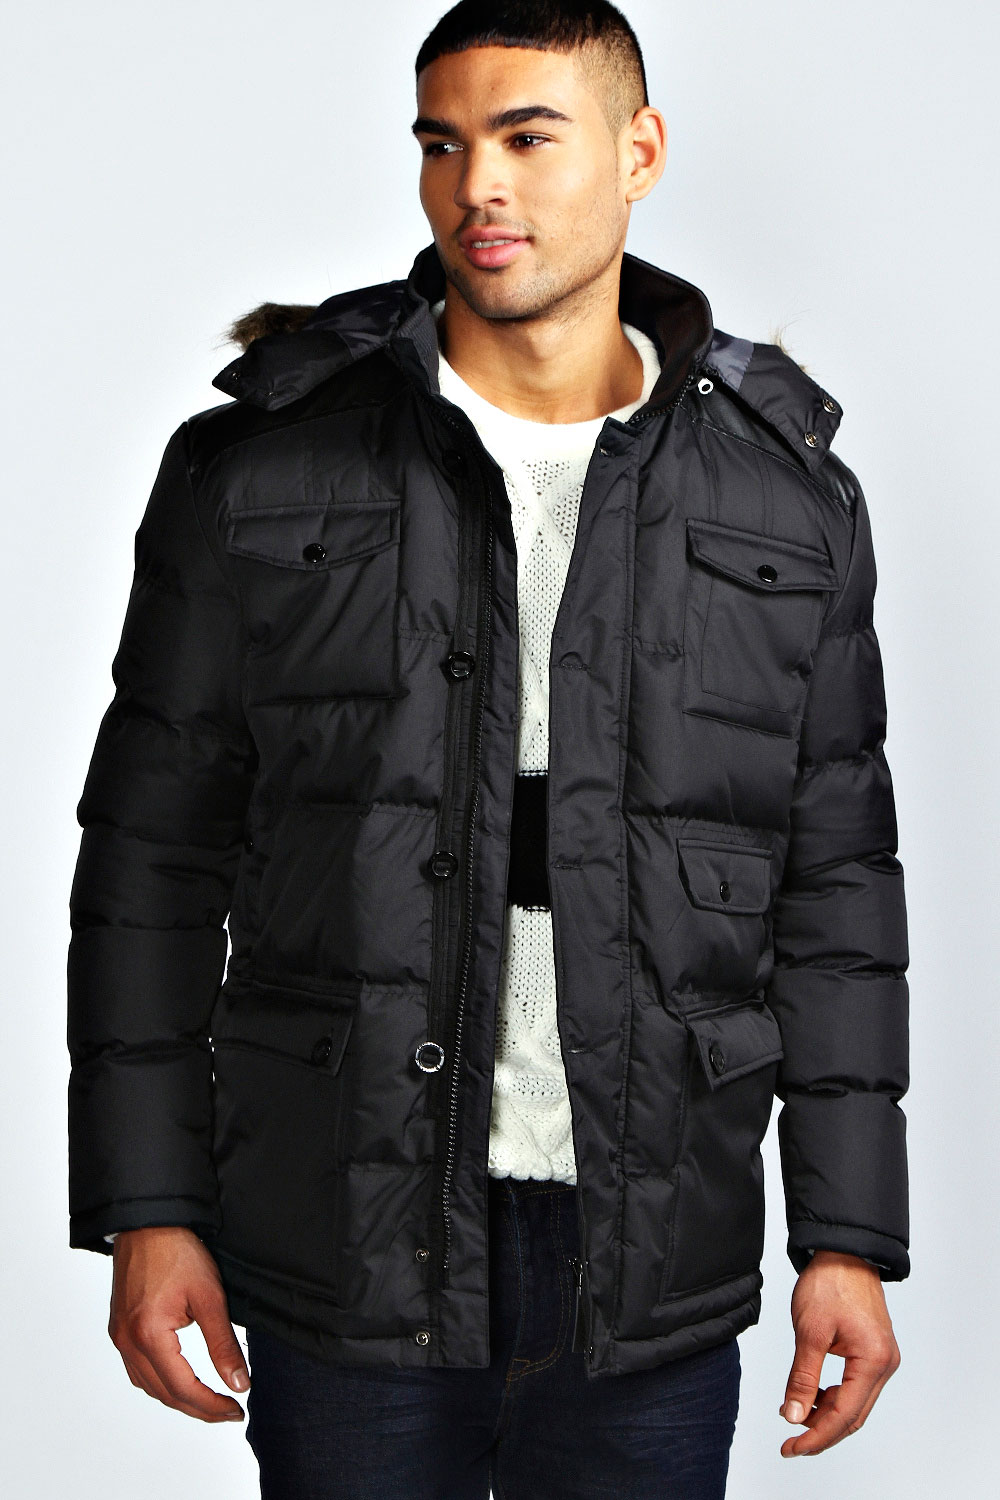 Boohoo Mens Padded Parka Jacket With Cord Shoulder Patch | eBay